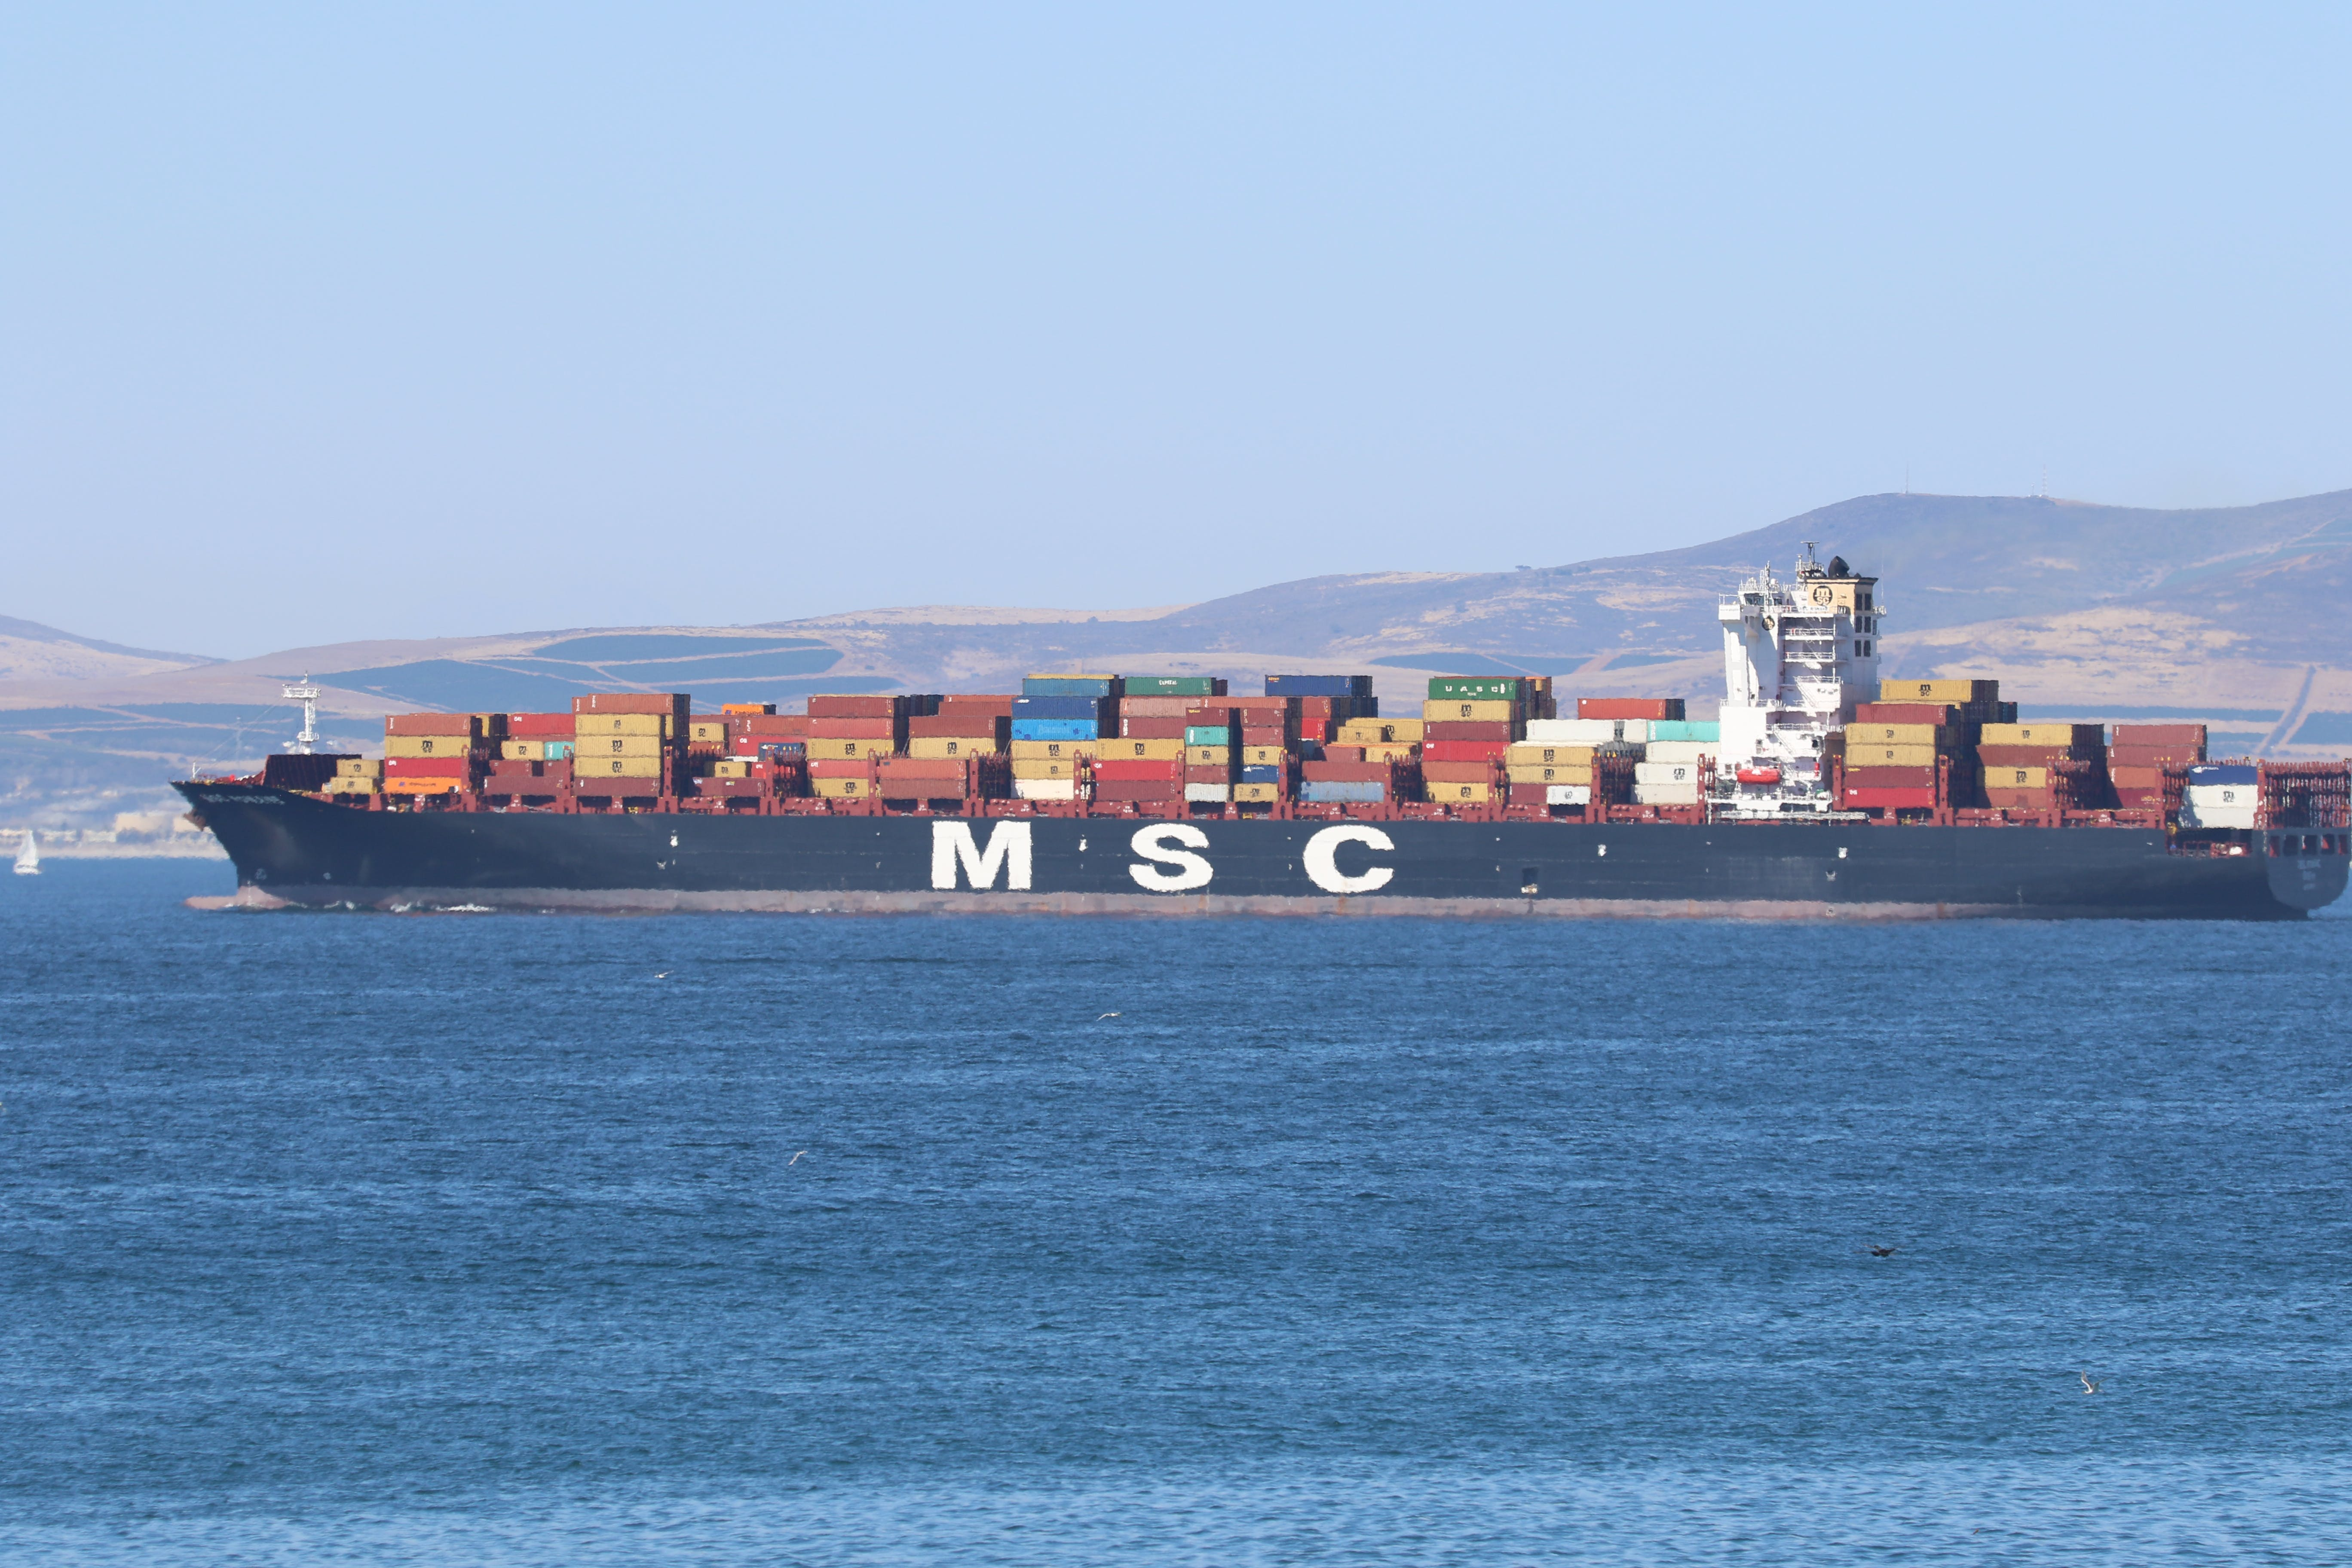 Free stock photo of cargo containers, ocean, sea, ship